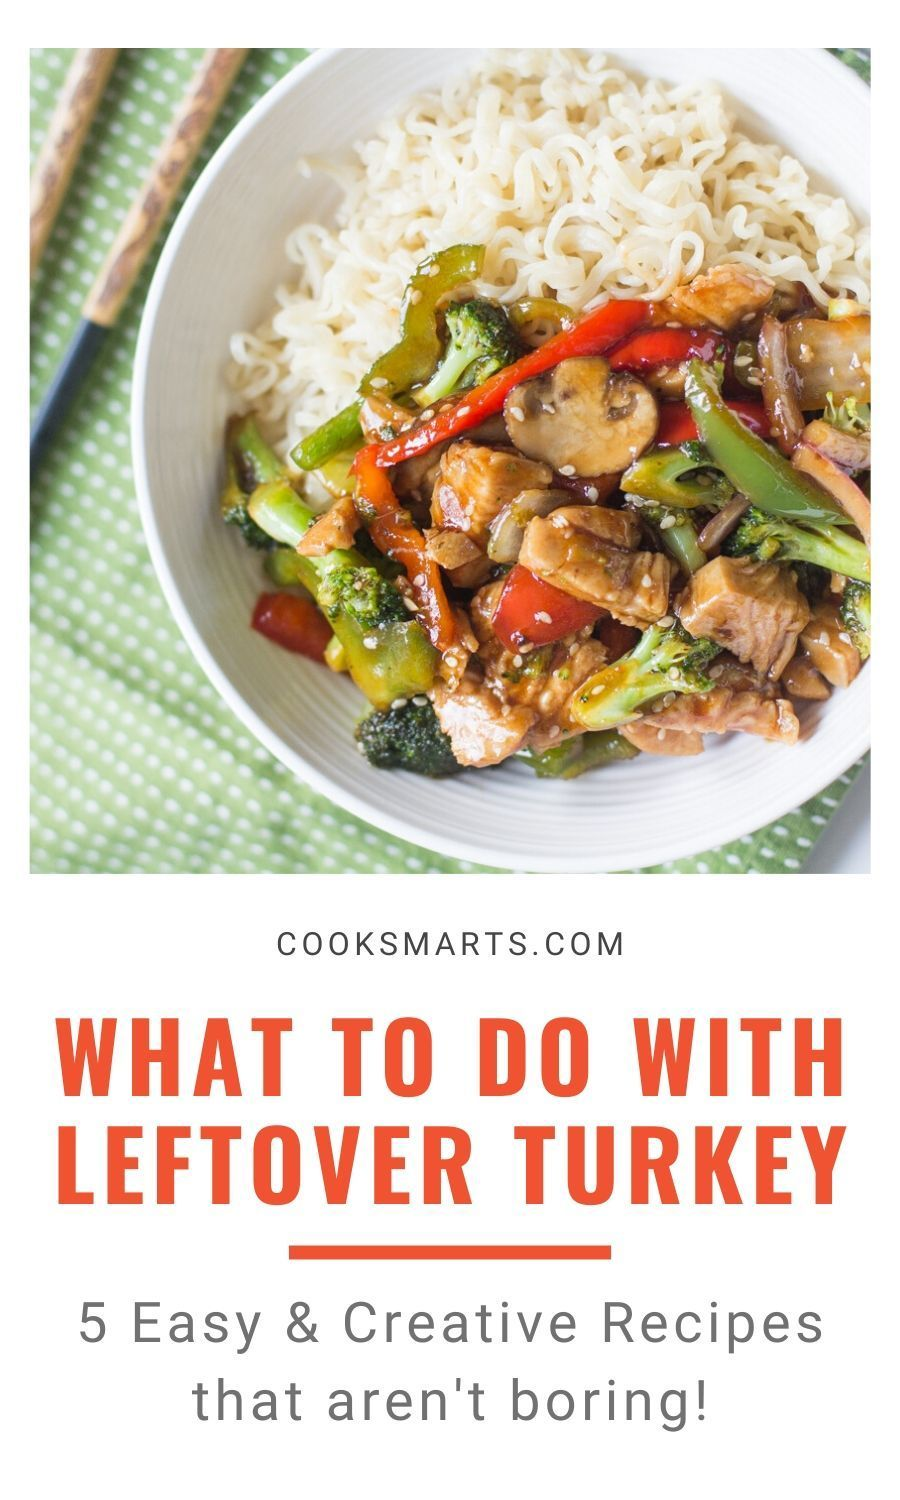 Dinner Recipes Quick Dinner Recipes Pinoy Dinner Recipes Pinterest Dinner Recipes To In 2020 Easy Thanksgiving Recipes Easy Turkey Recipes Delicious Dinner Recipes